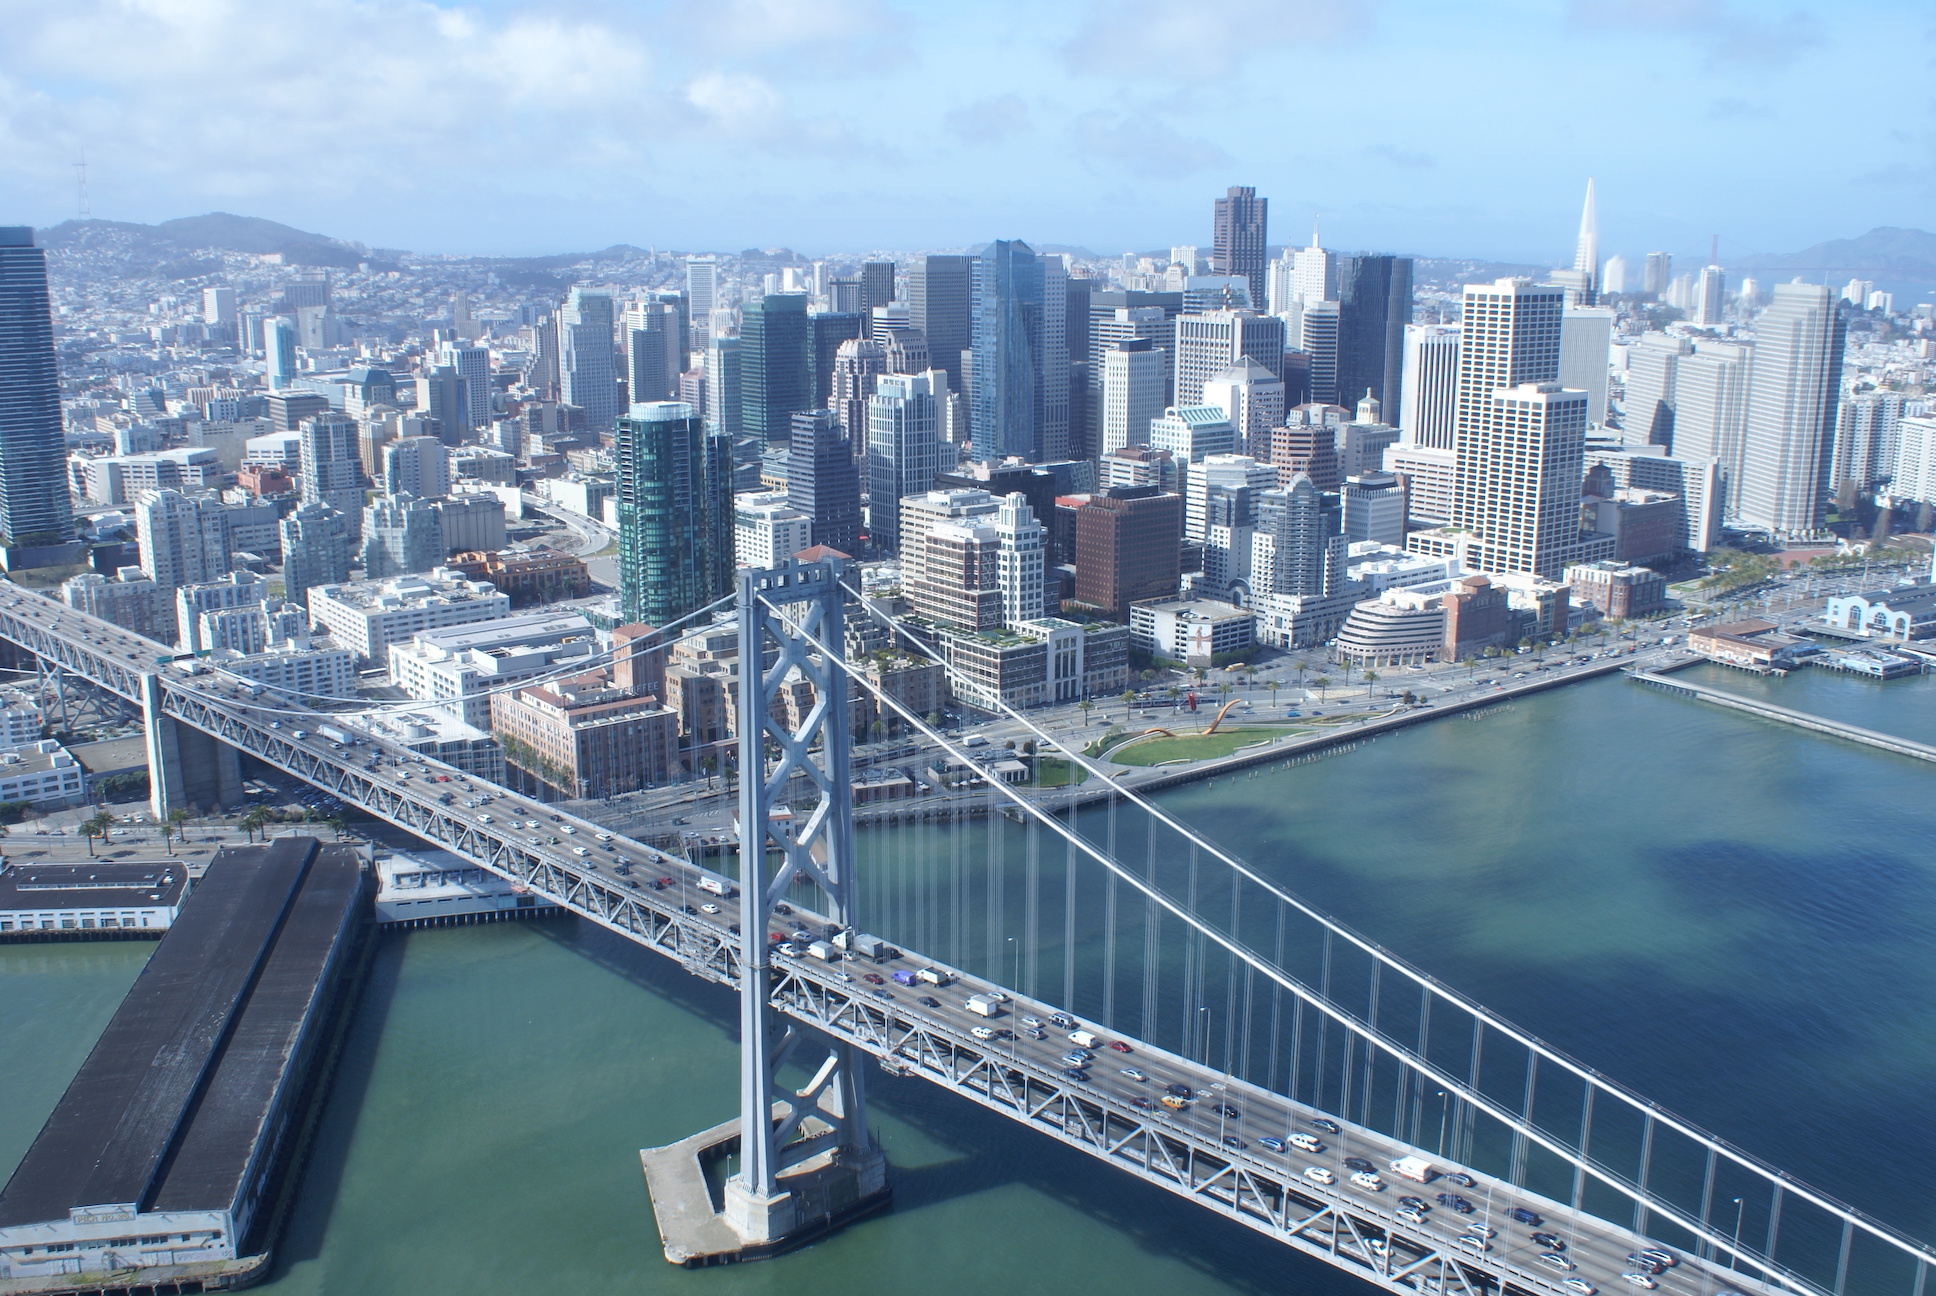 A new study by the US Geological Survey (USGS) has revealed the shocking potential of an earthquake generated by the Hayward fault, a 52-mile fault that stretches throughout the San Francisco Bay Area.